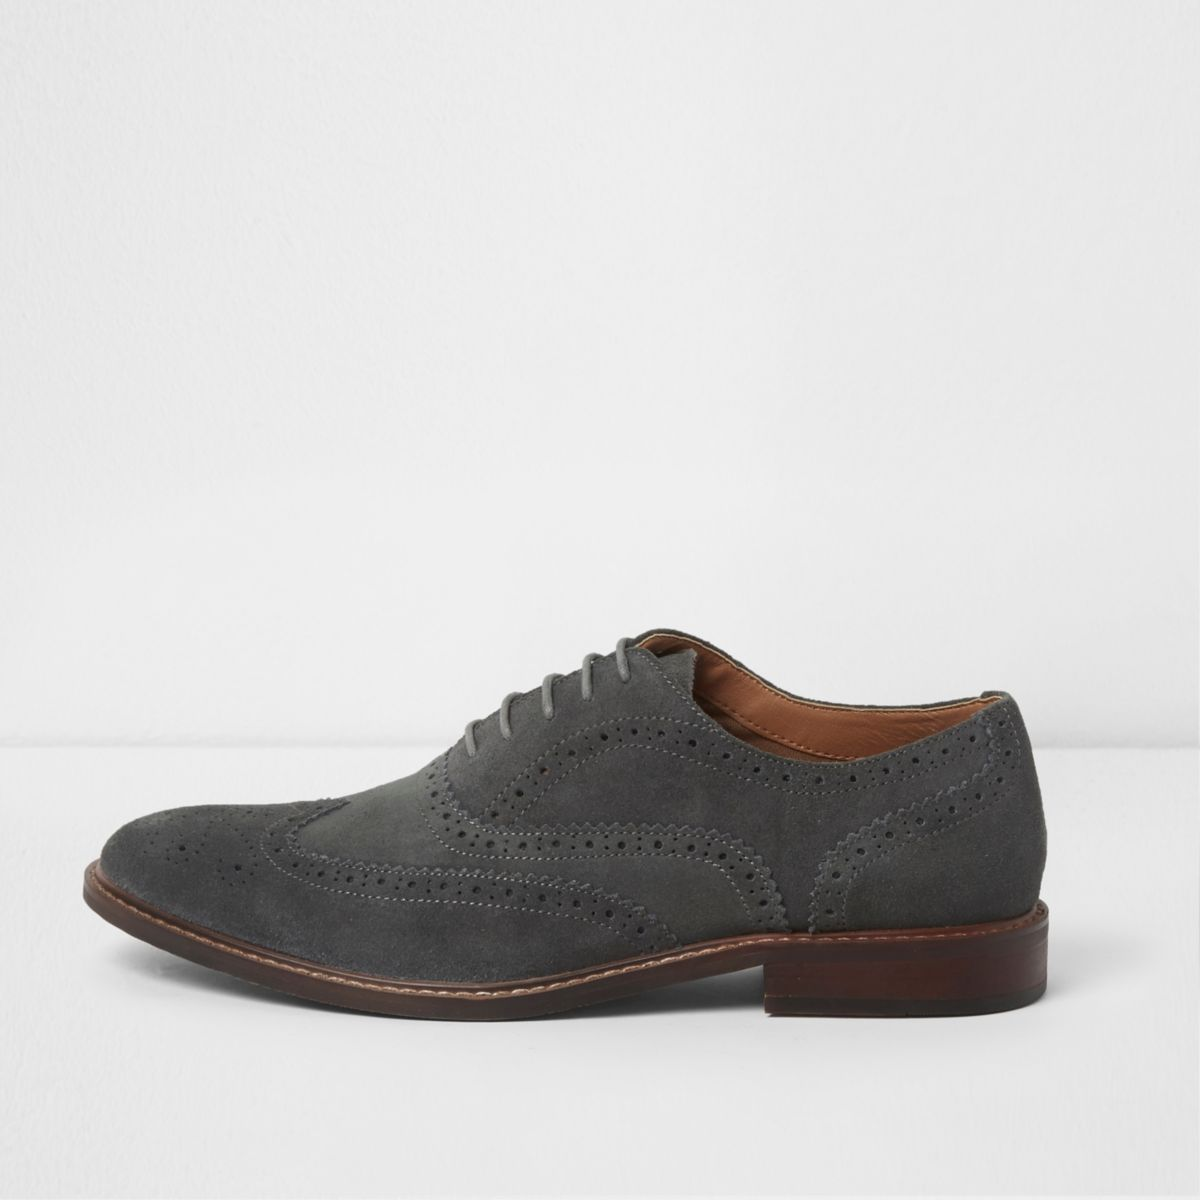 Grey suede lace-up brogues